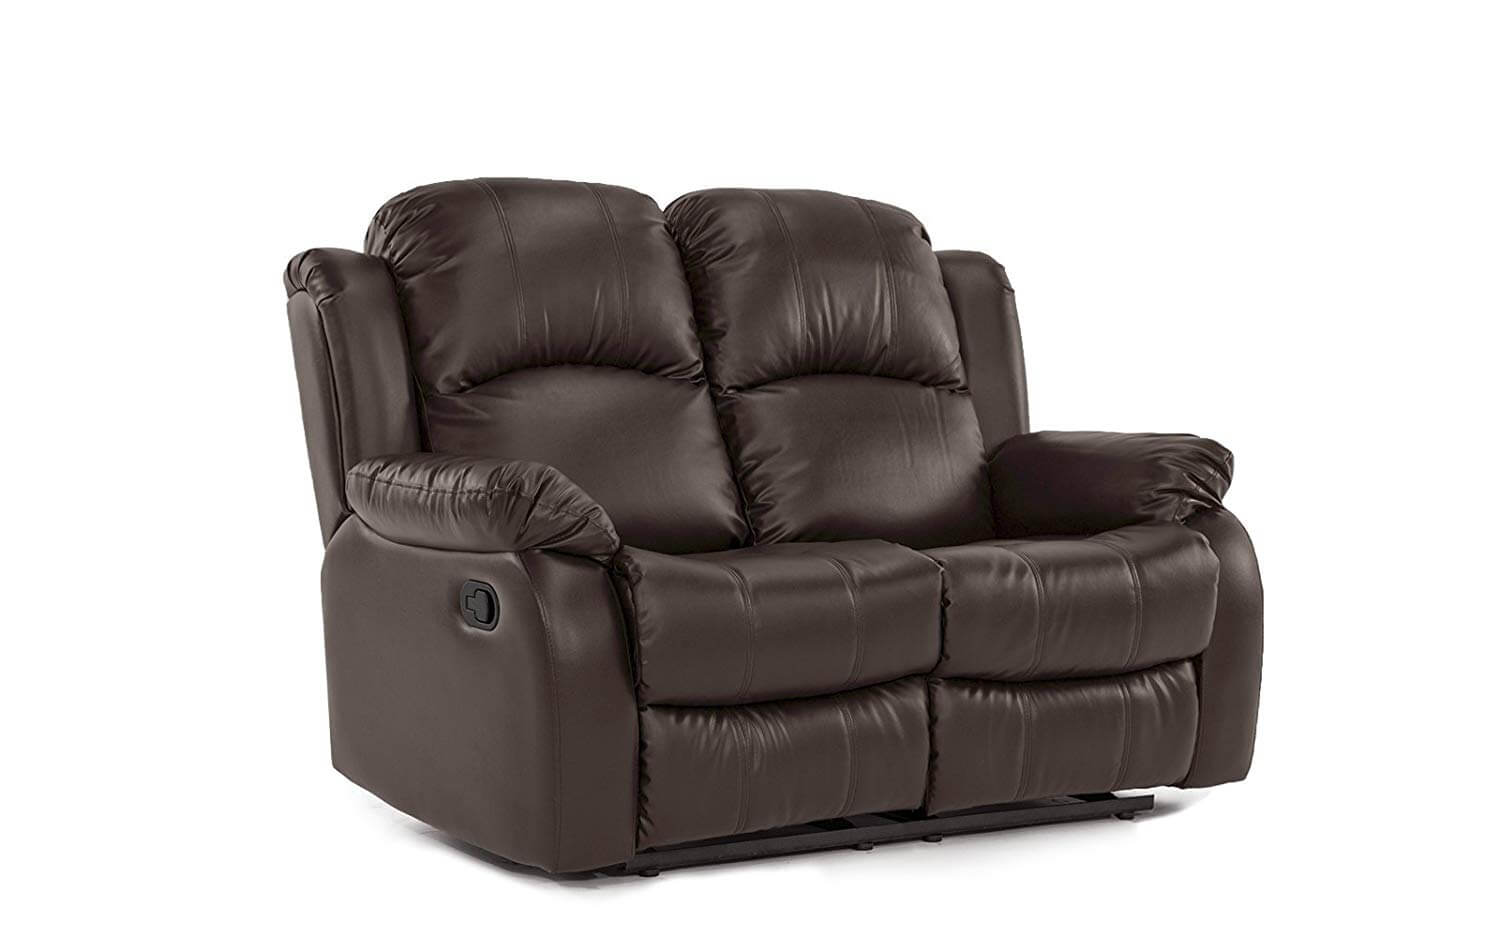 Best Leather Recliner Sofa Reviews (Modern Leather Sofa) – Buy Solutionz